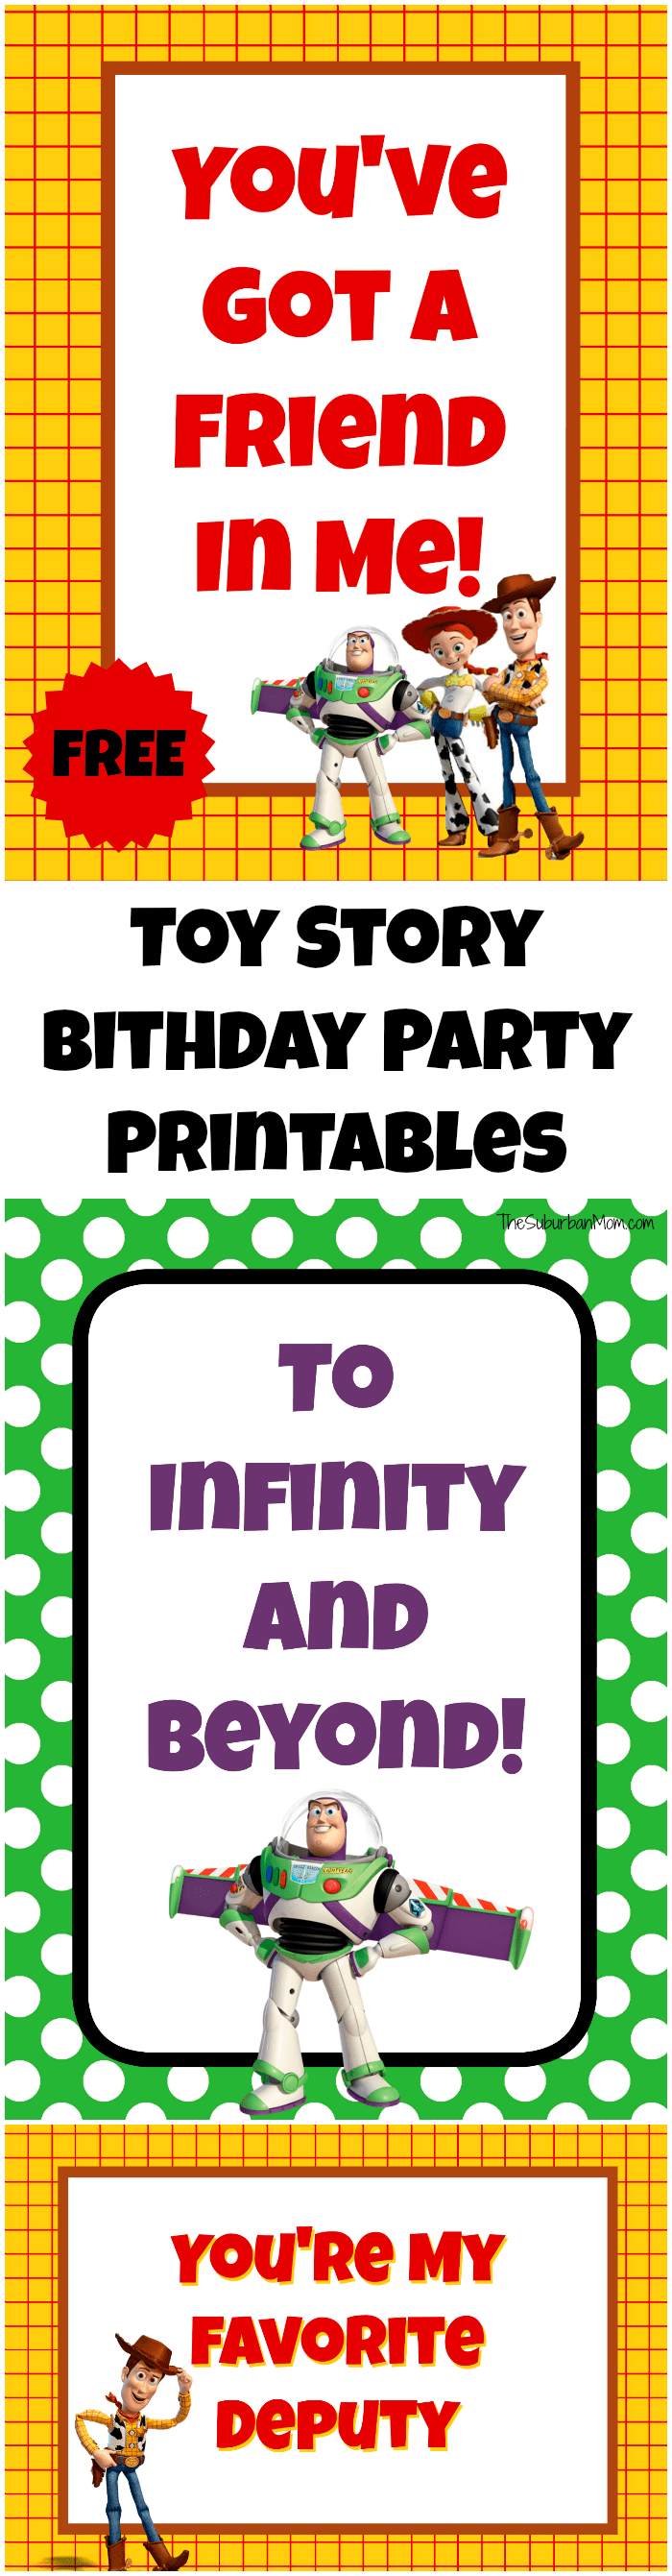 Free Toy Story Party Printables